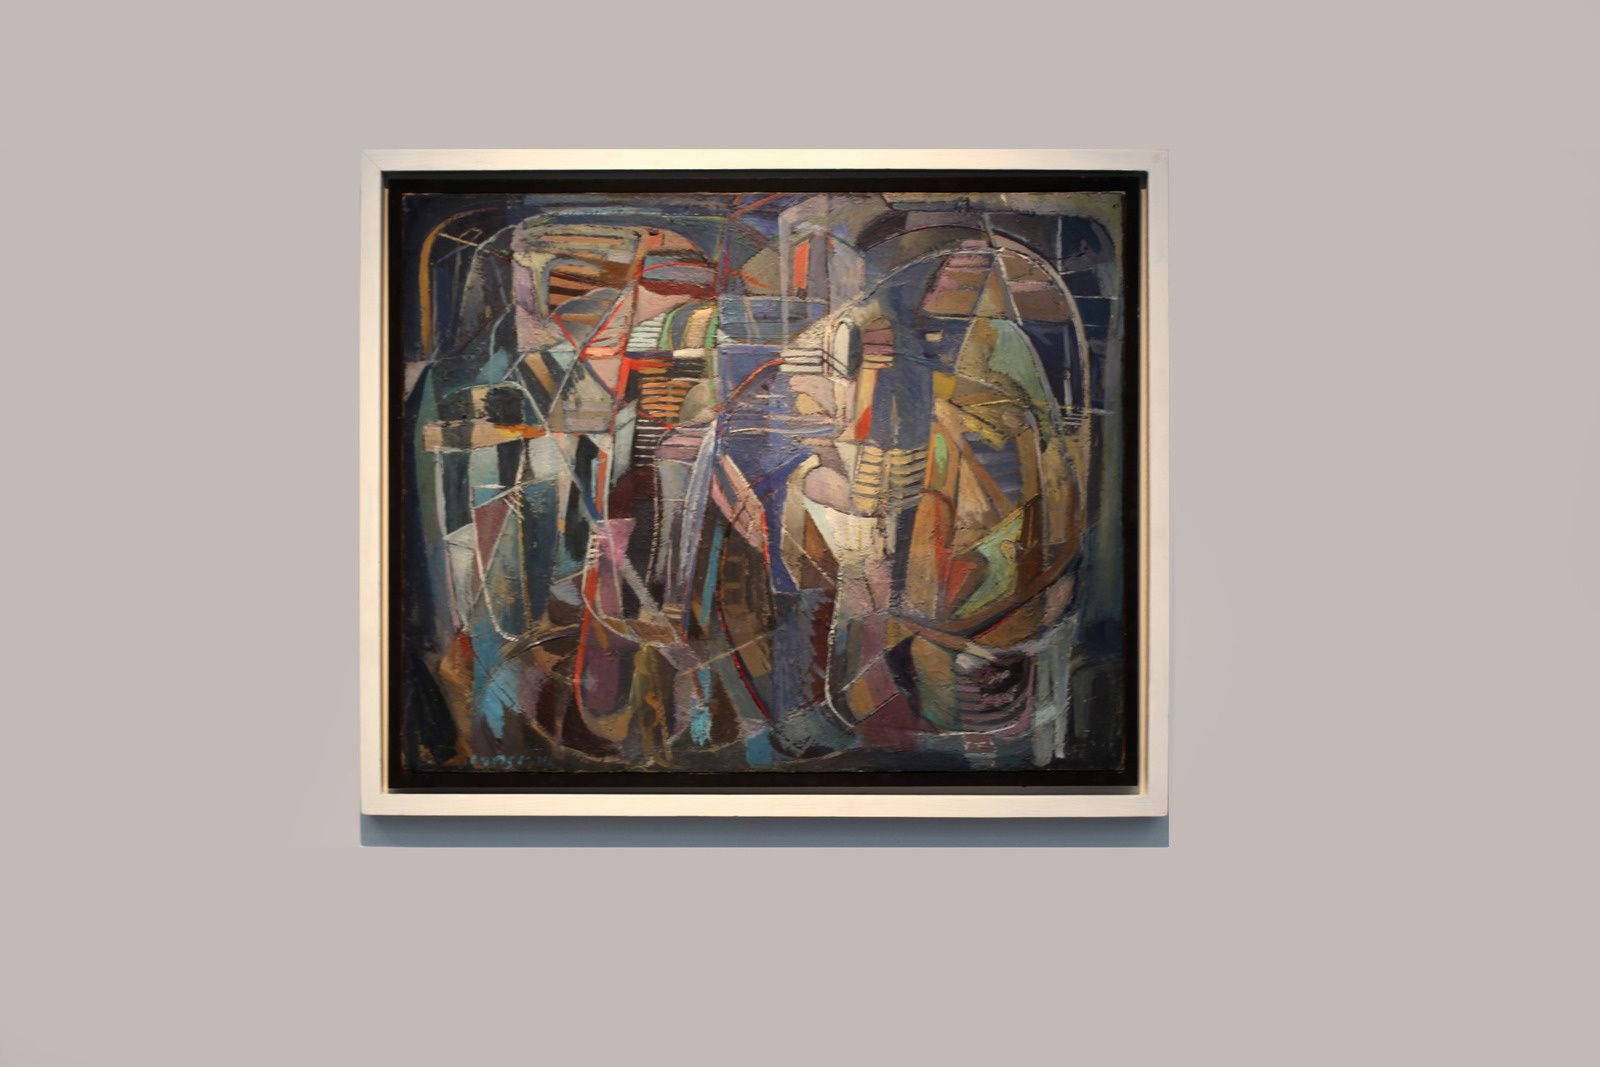 """Composition bleue"", 1946 de André LANSKOY - Courtesy Galerie Jeanne Bucher Jaeger © Photo Éric Simon"